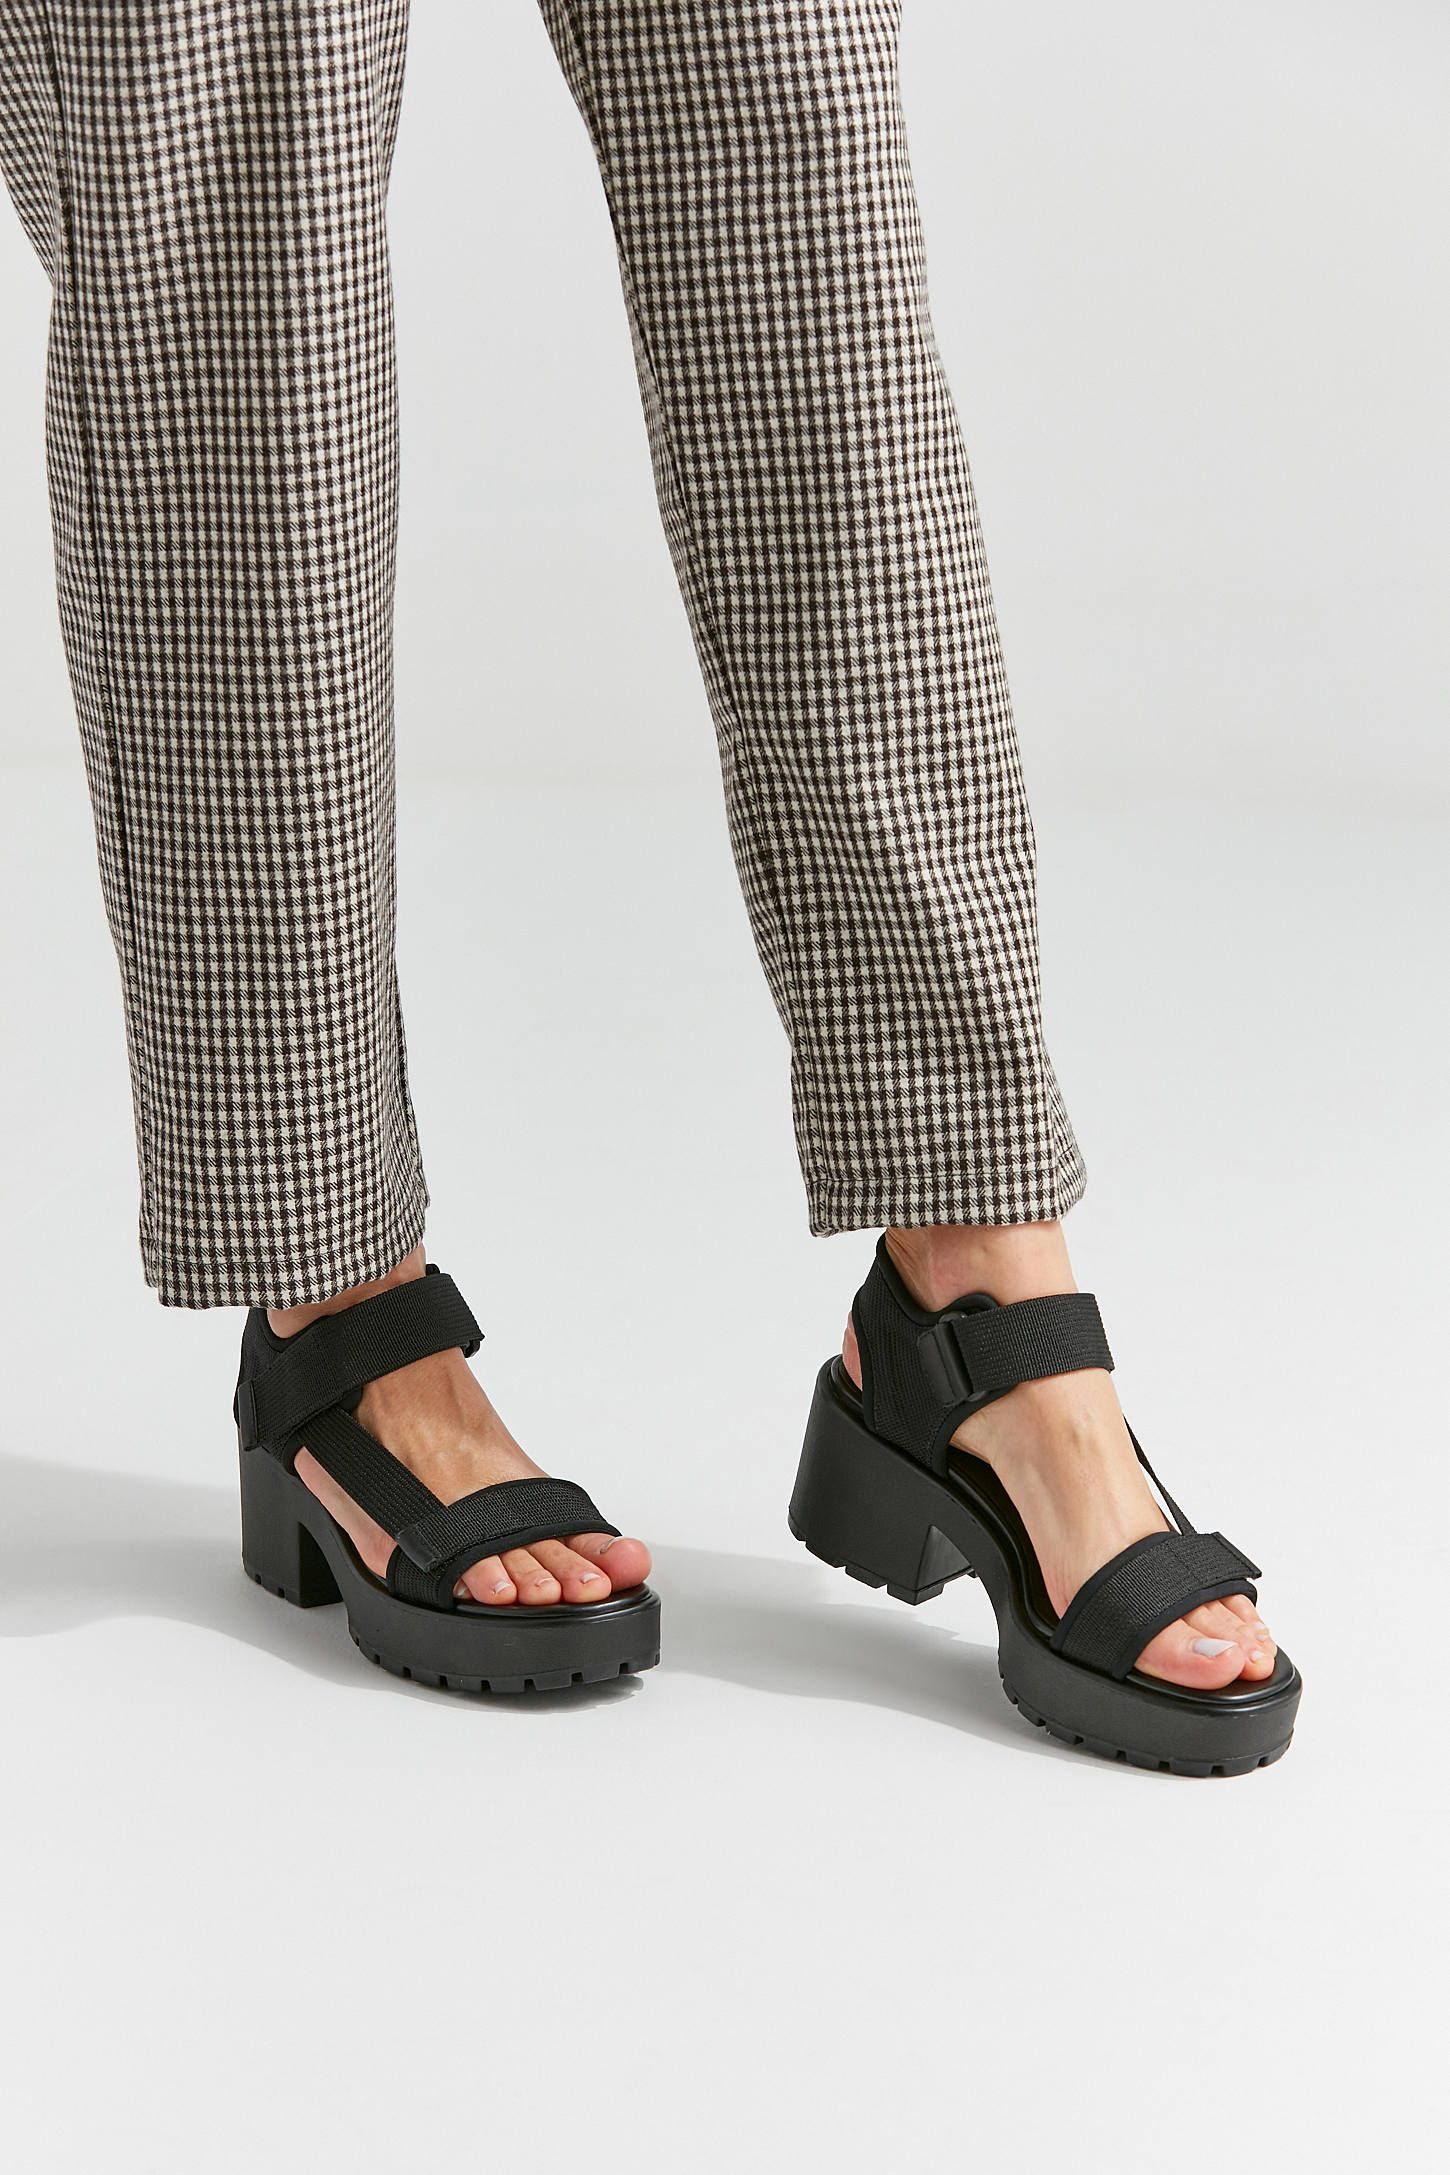 3eb442601a0 Vagabond Shoemakers Dioon Platform Sandal in 2019 | want | Shoes ...